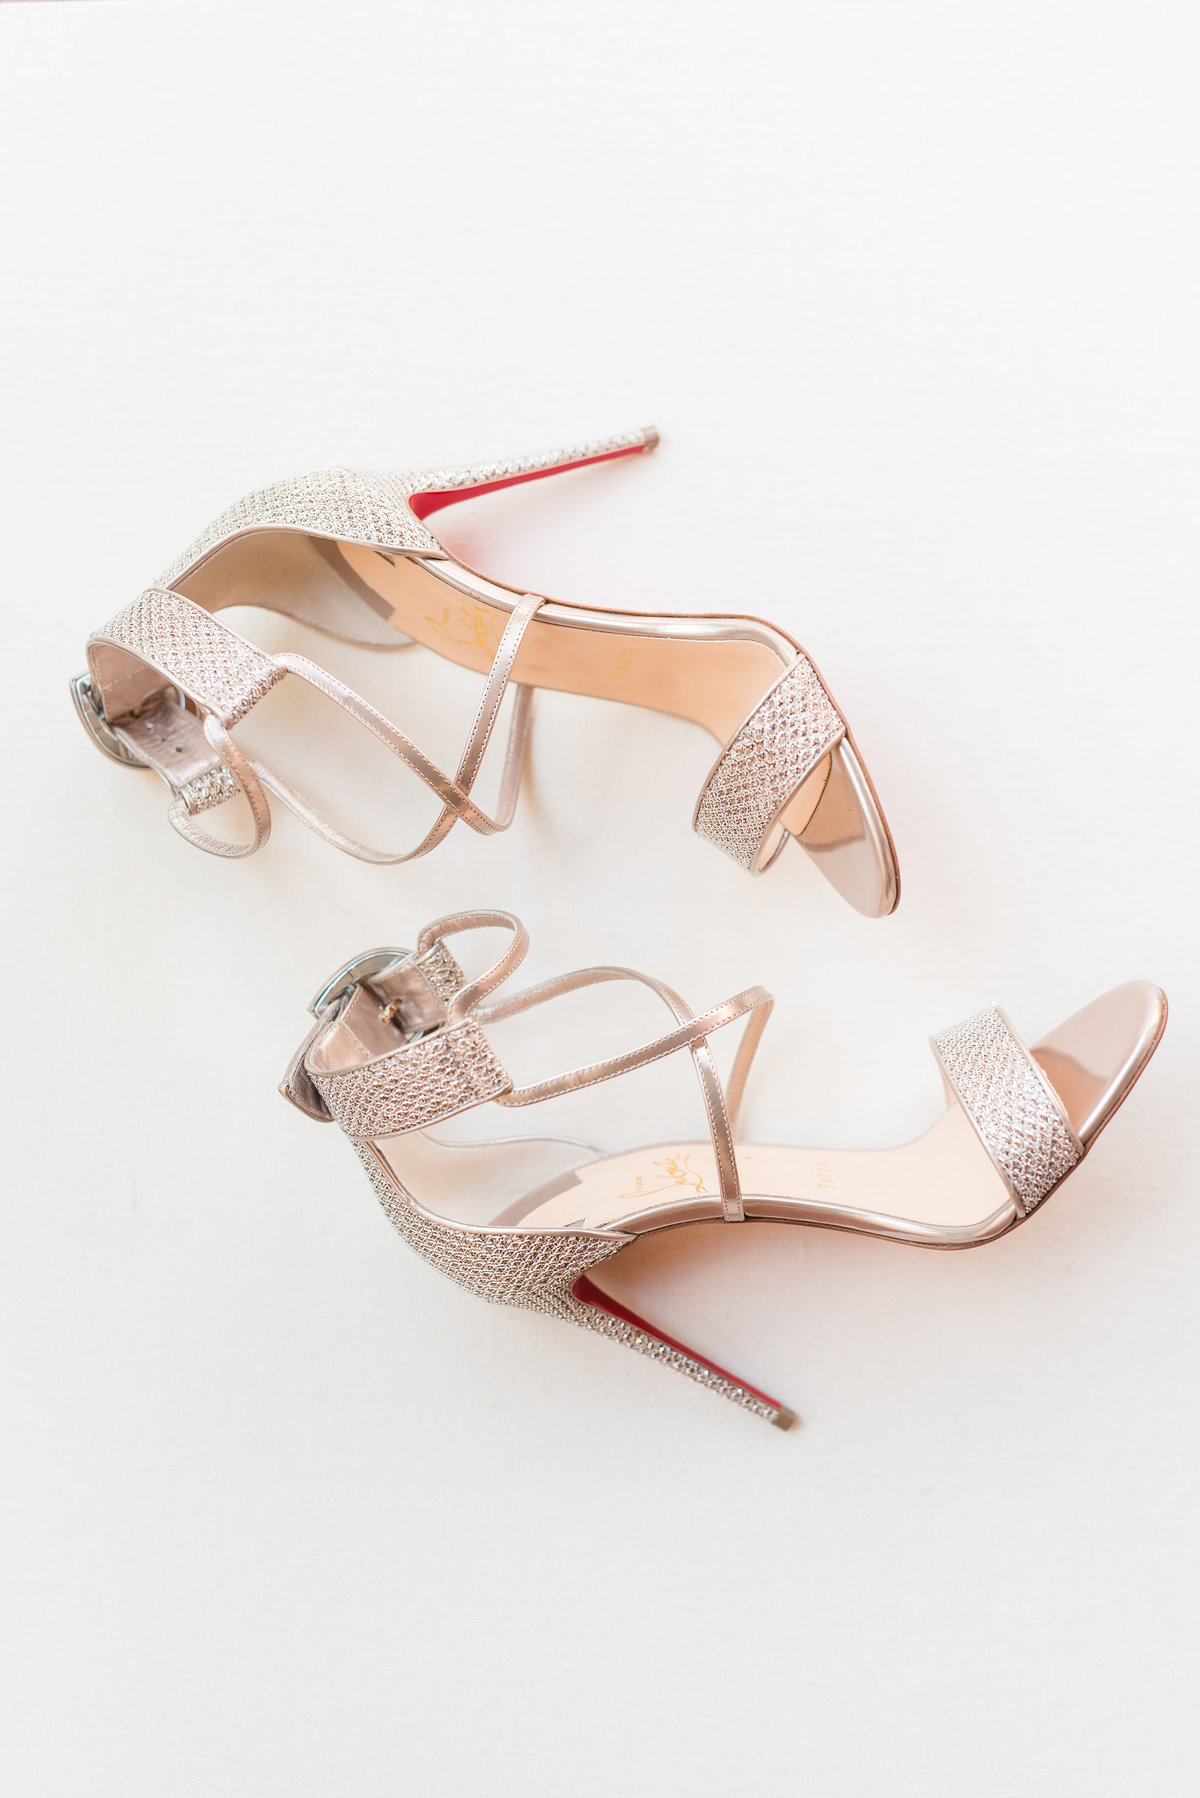 Louboutins Detail Shoes